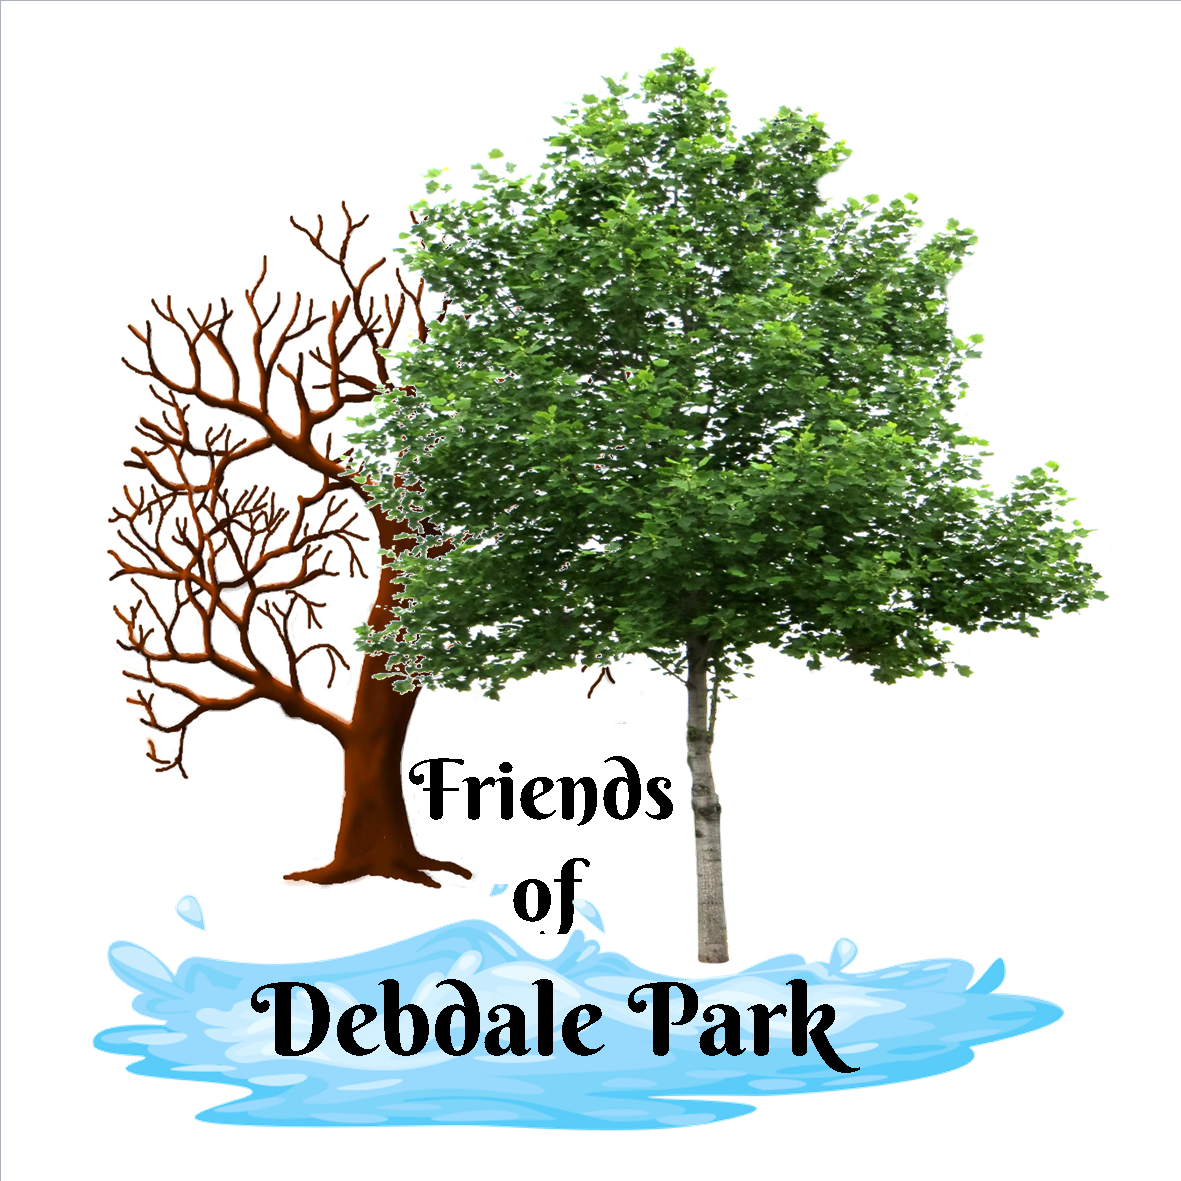 Friends of Debdale Park